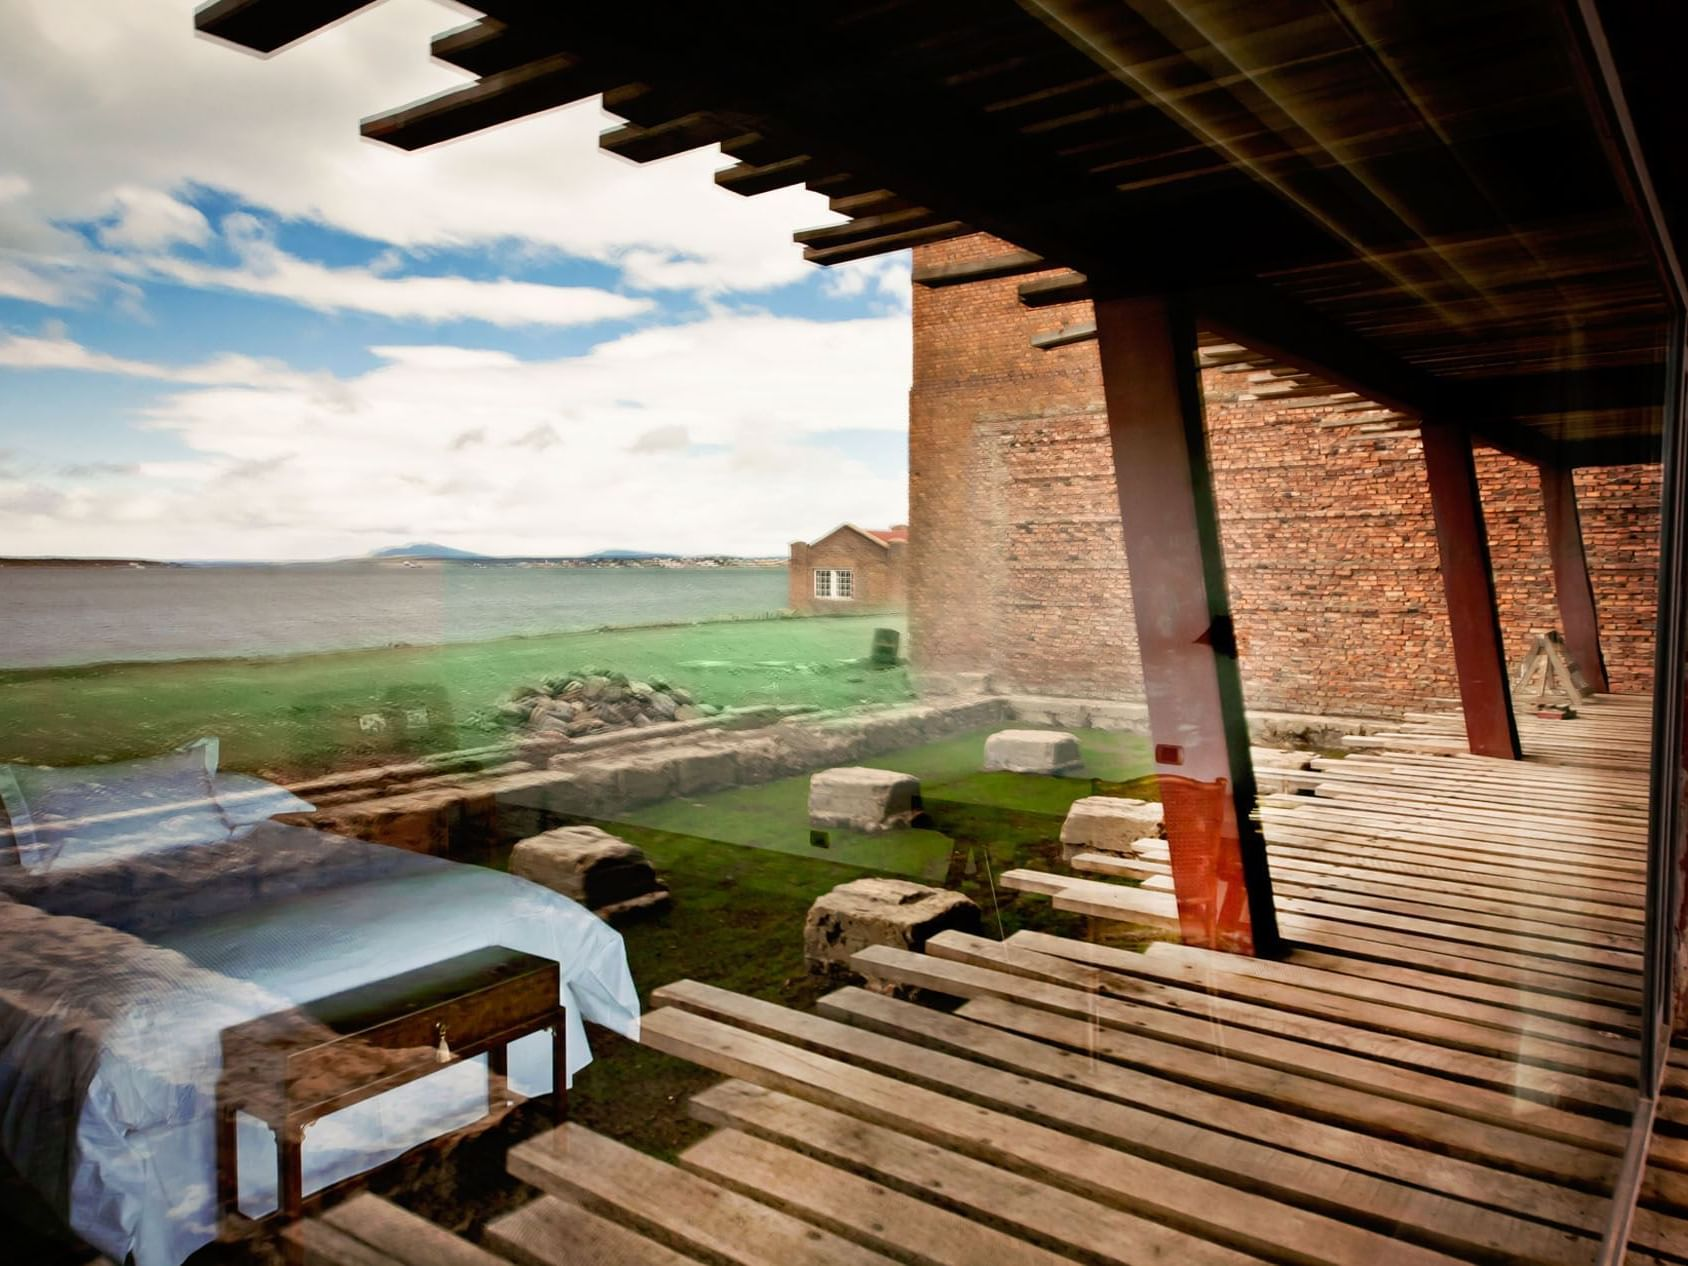 Bed and Breakfast Patagonia